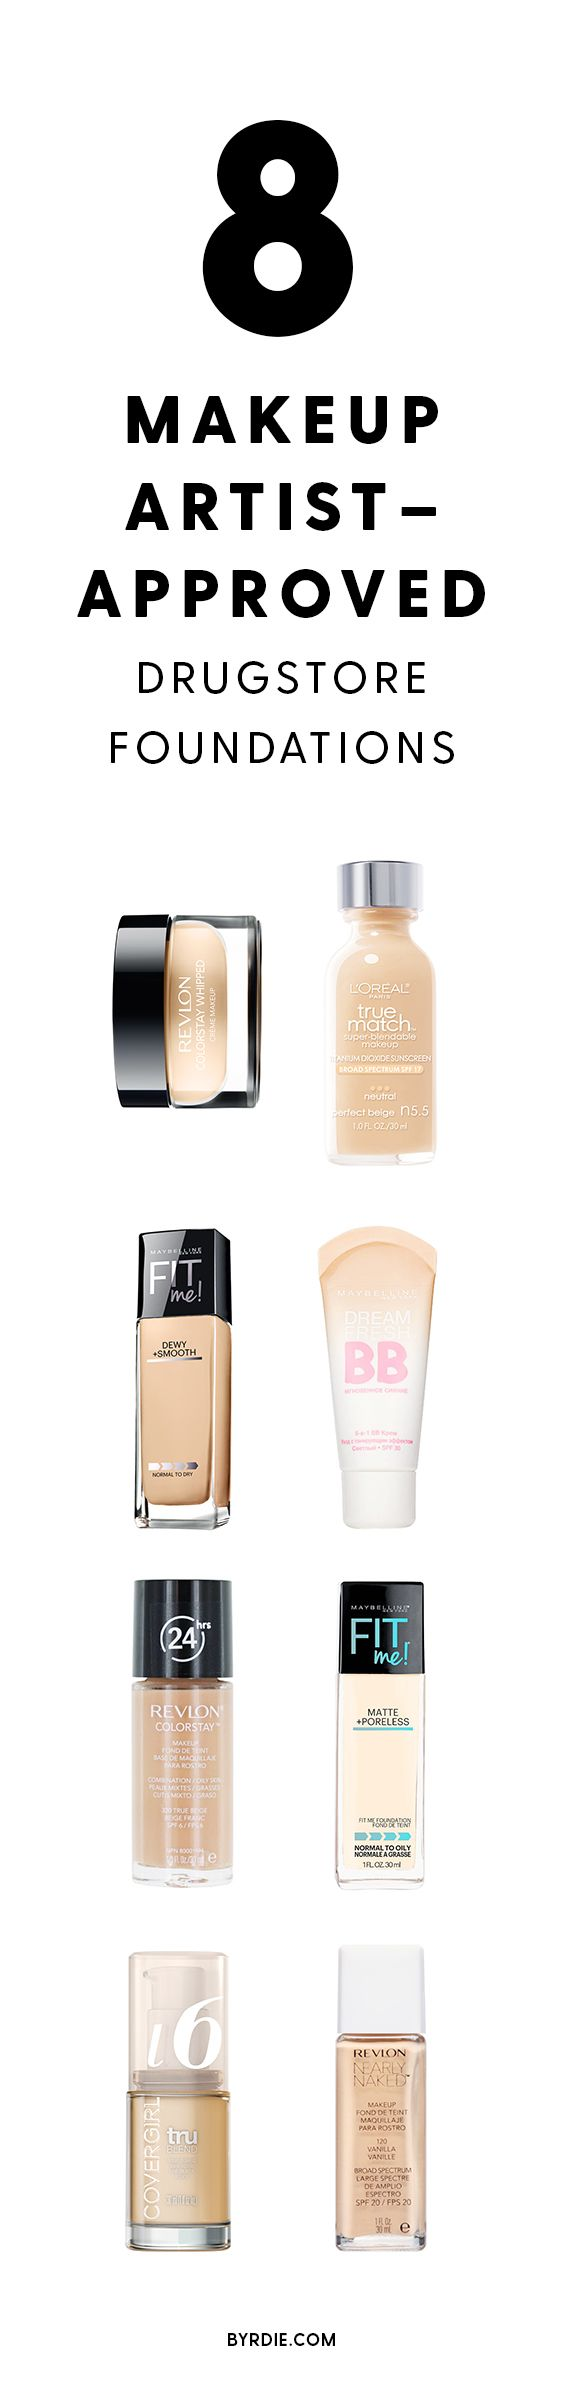 Makeup artist-approved drugstore foundations...